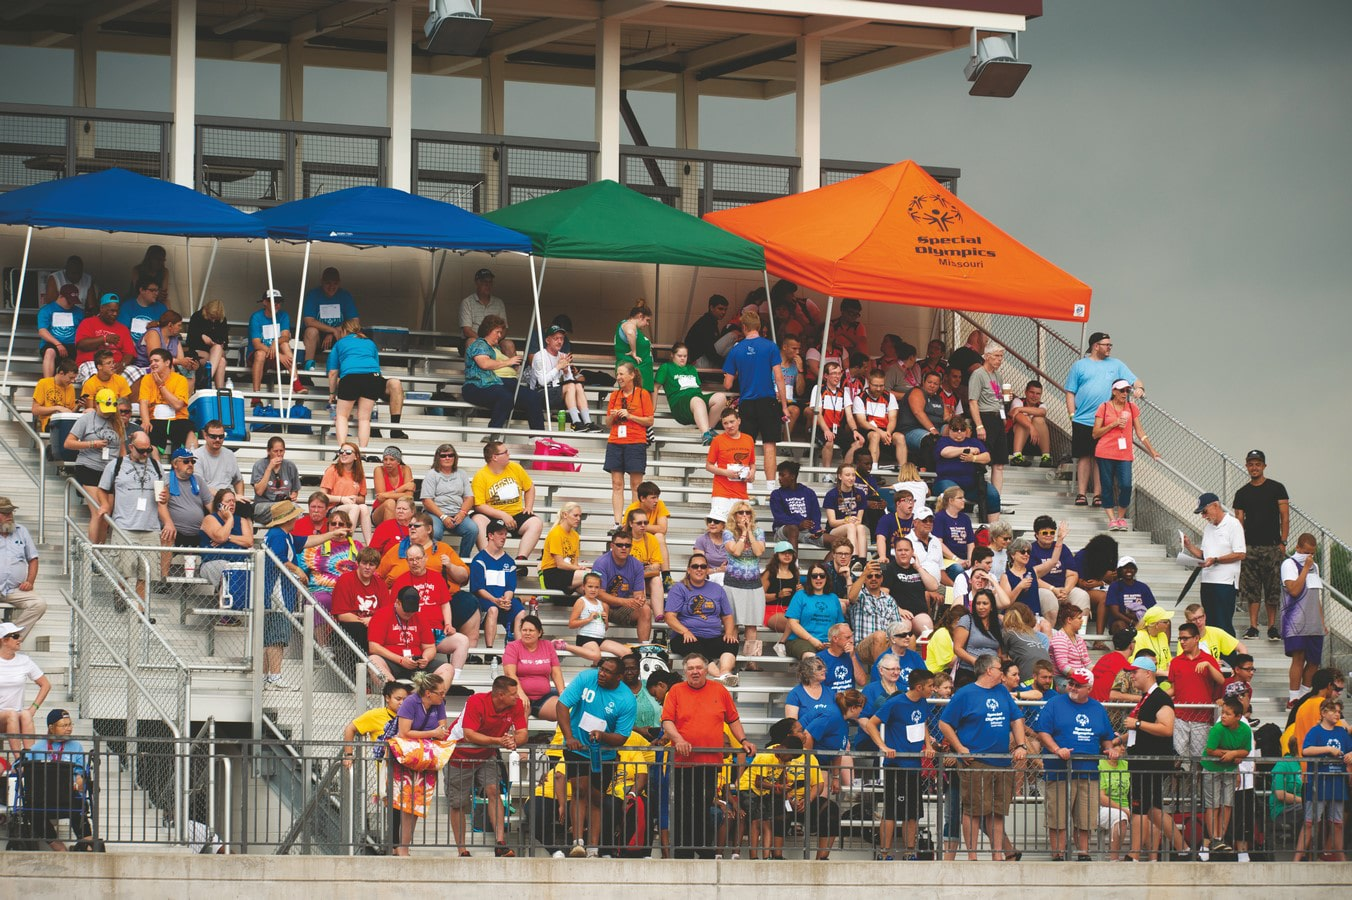 Large group of spectators sitting on bleachers watching and cheering on athletes